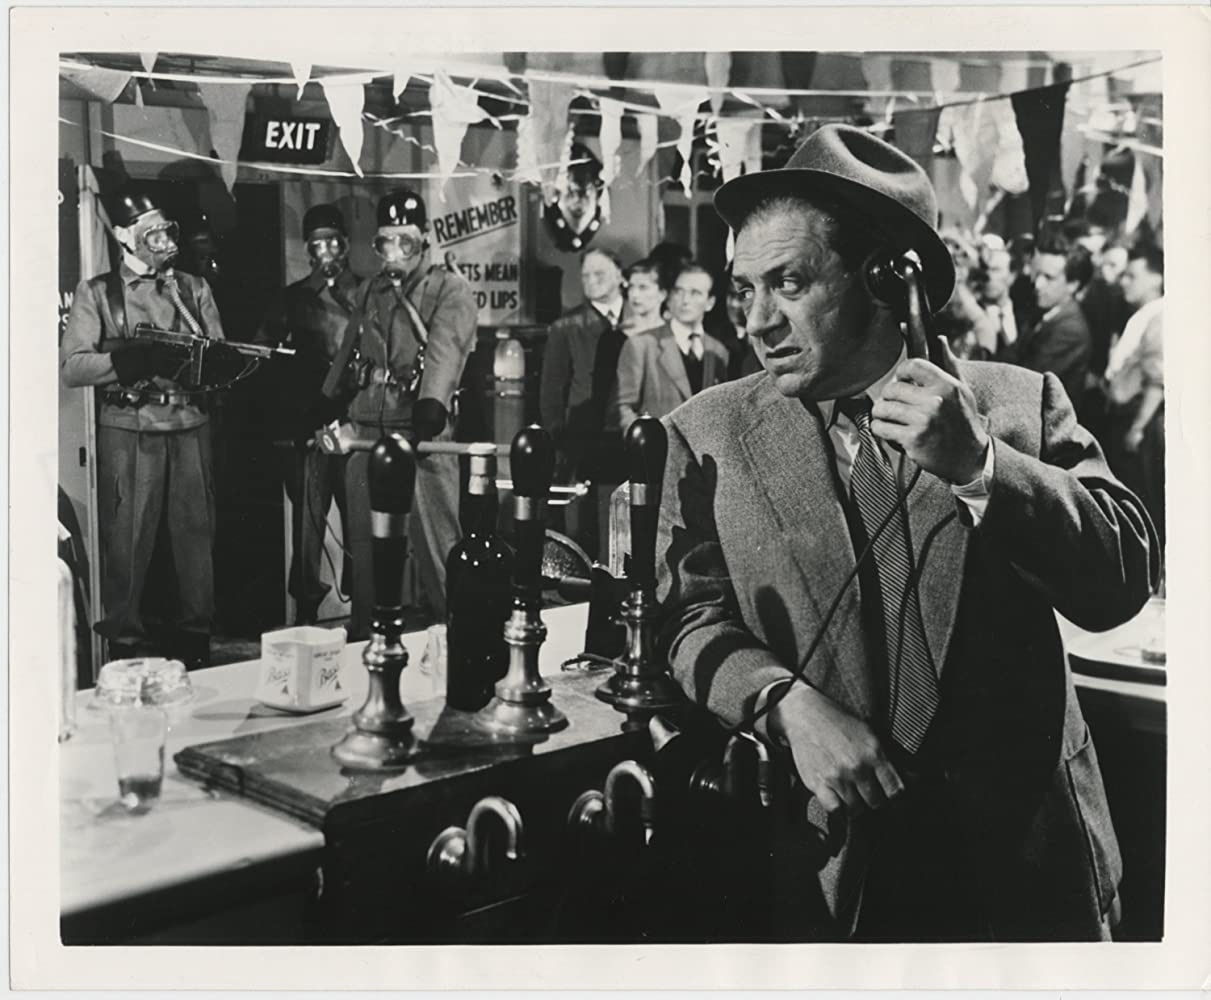 Sidney James in Quatermass 2 (1957)